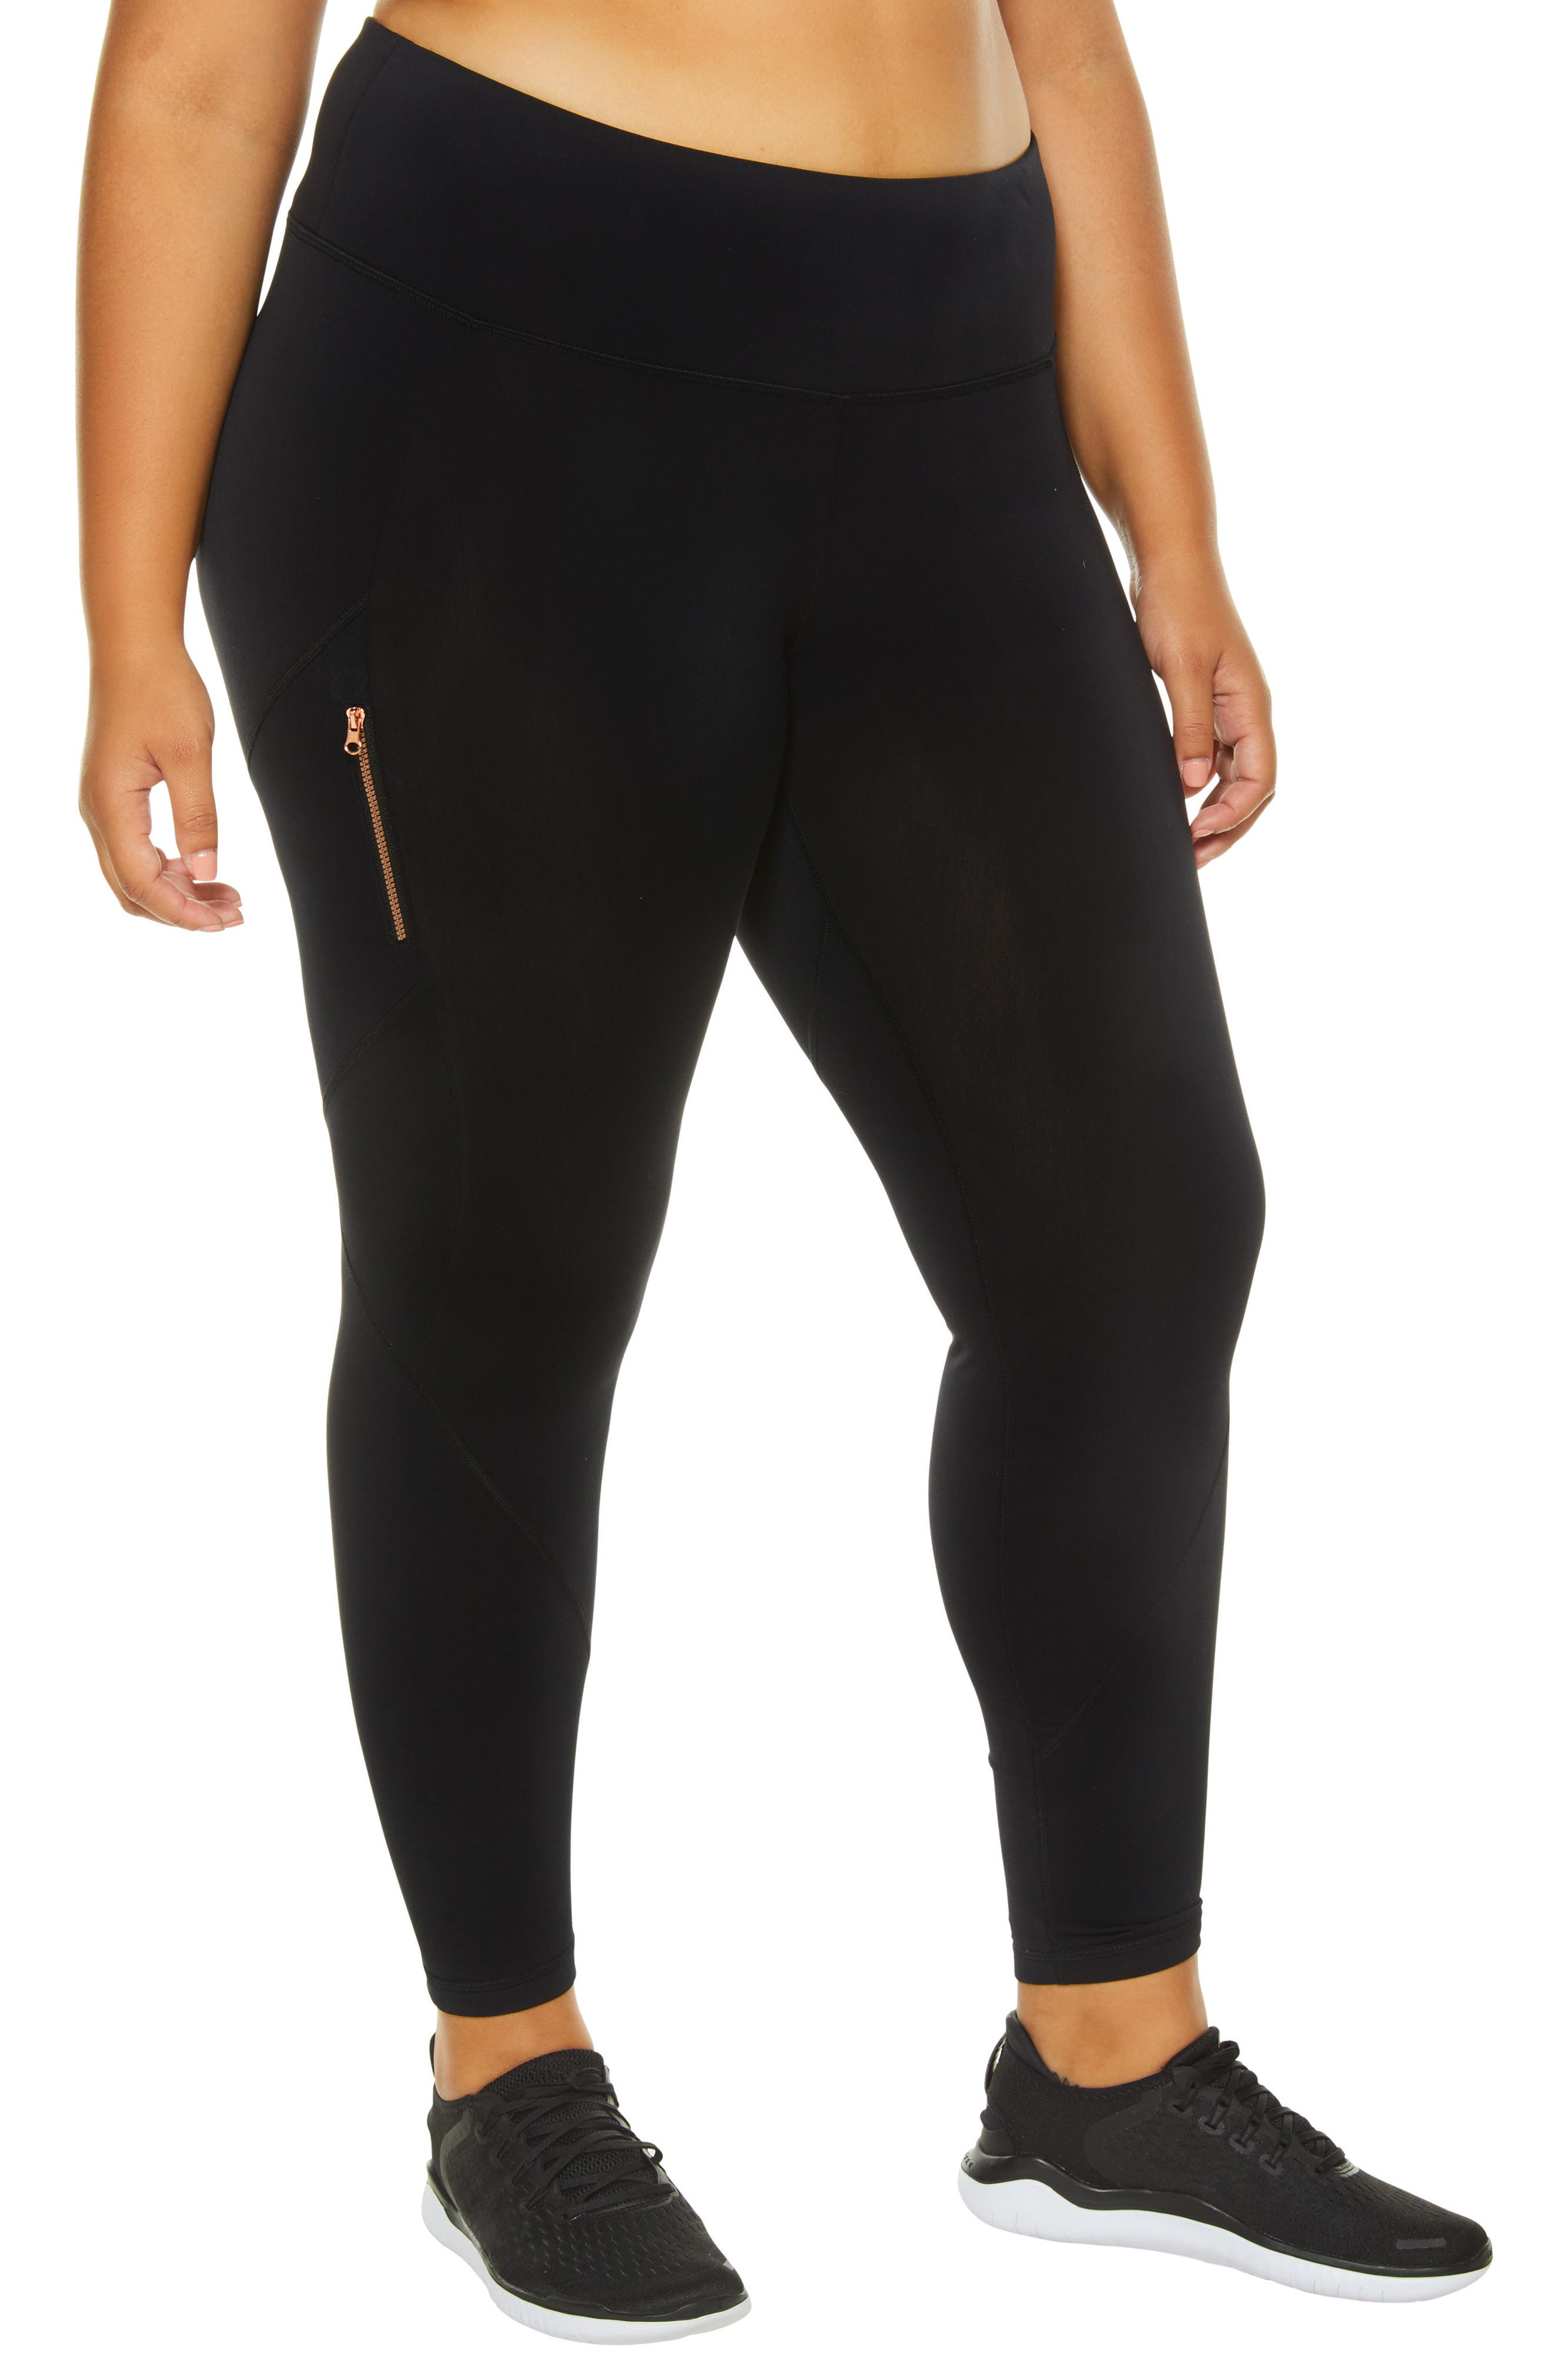 SHAPE ACTIVEWEAR, Blaze Fleece Leggings, Main thumbnail 1, color, 001